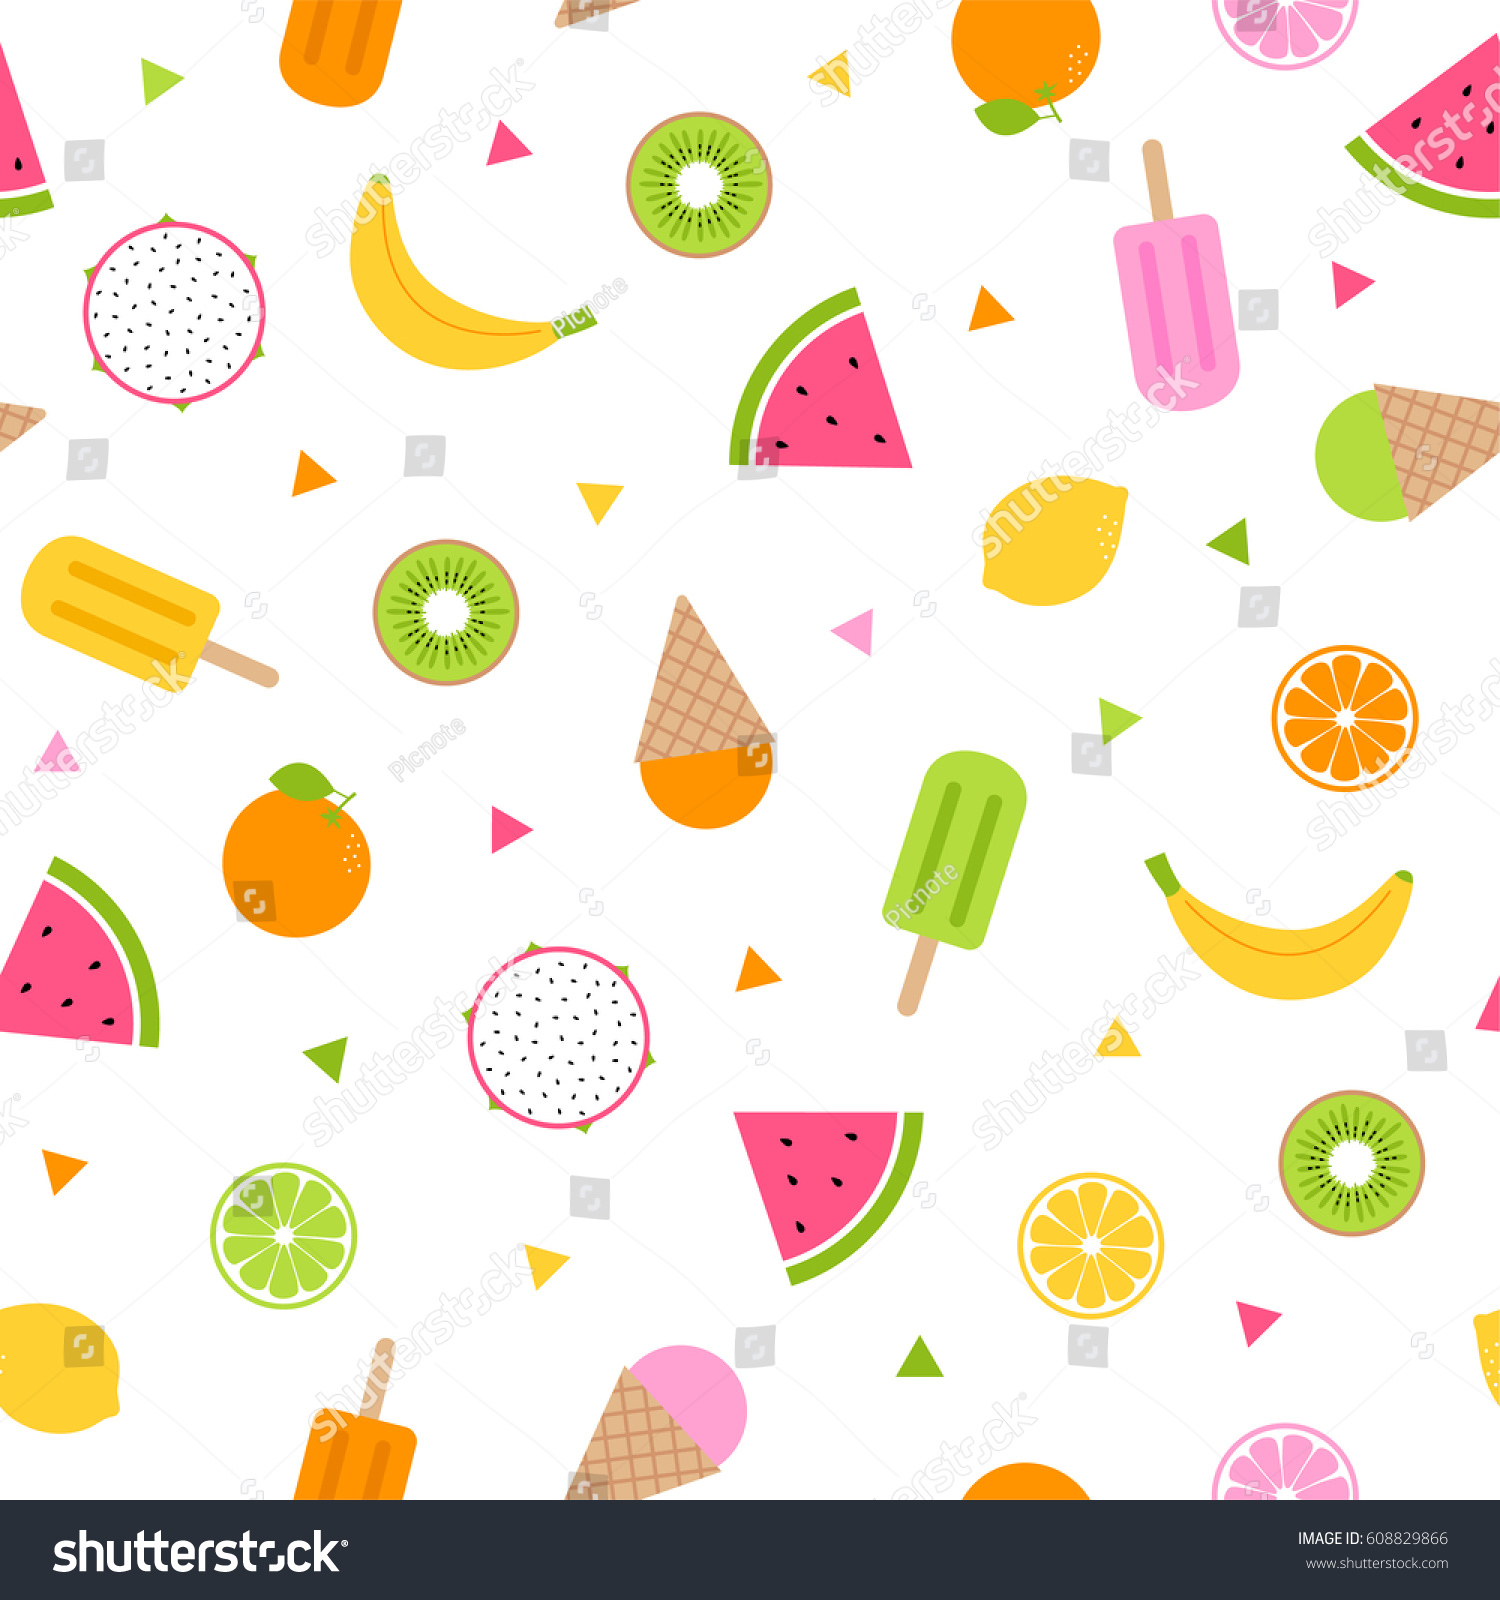 Cute Colorful Ice Cream Seamless Pattern Background: Cute Tropical Fruits Ice Cream Seamless Stock Vector